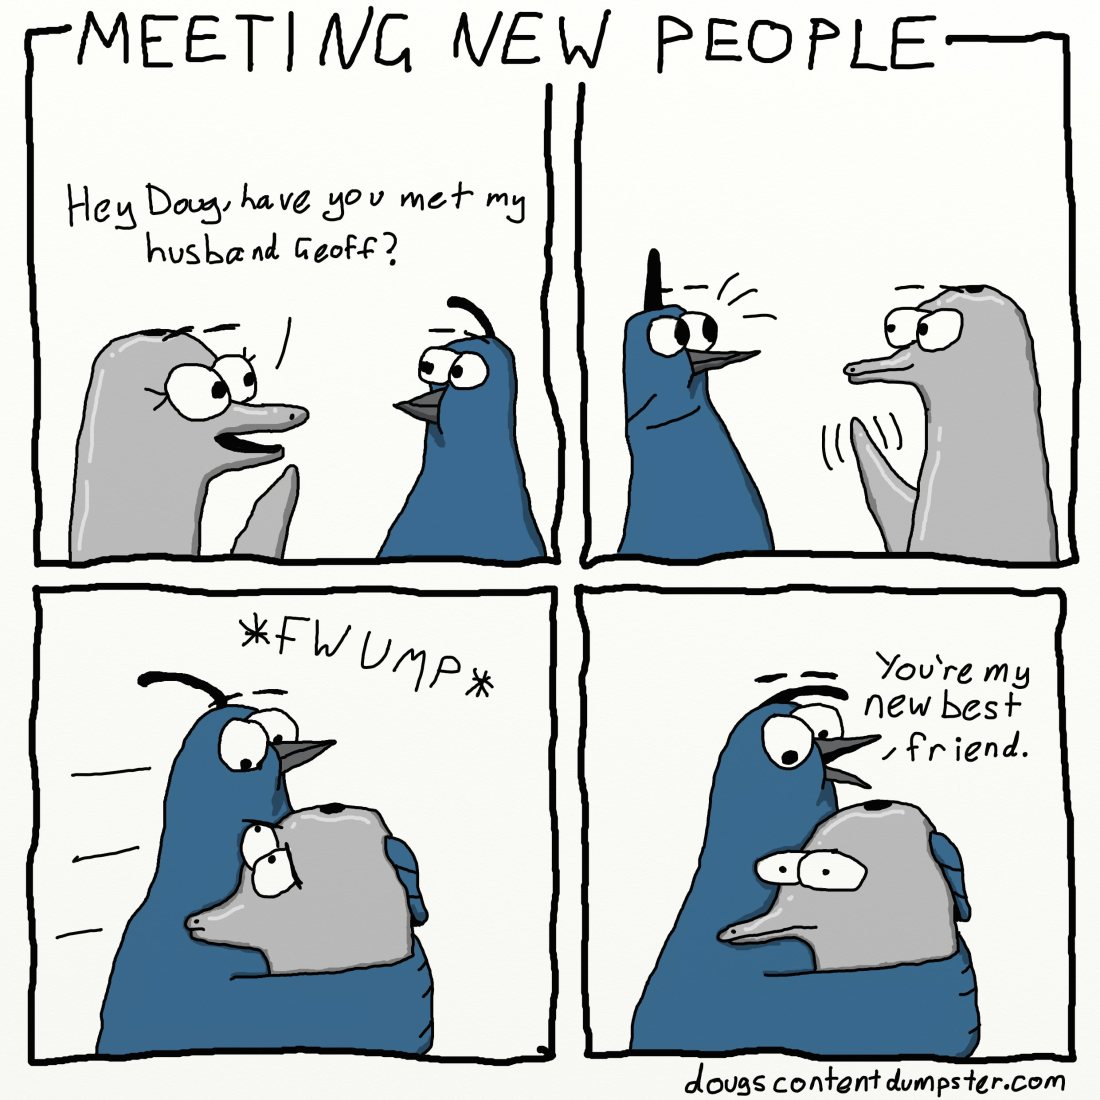 meetingnewpeople